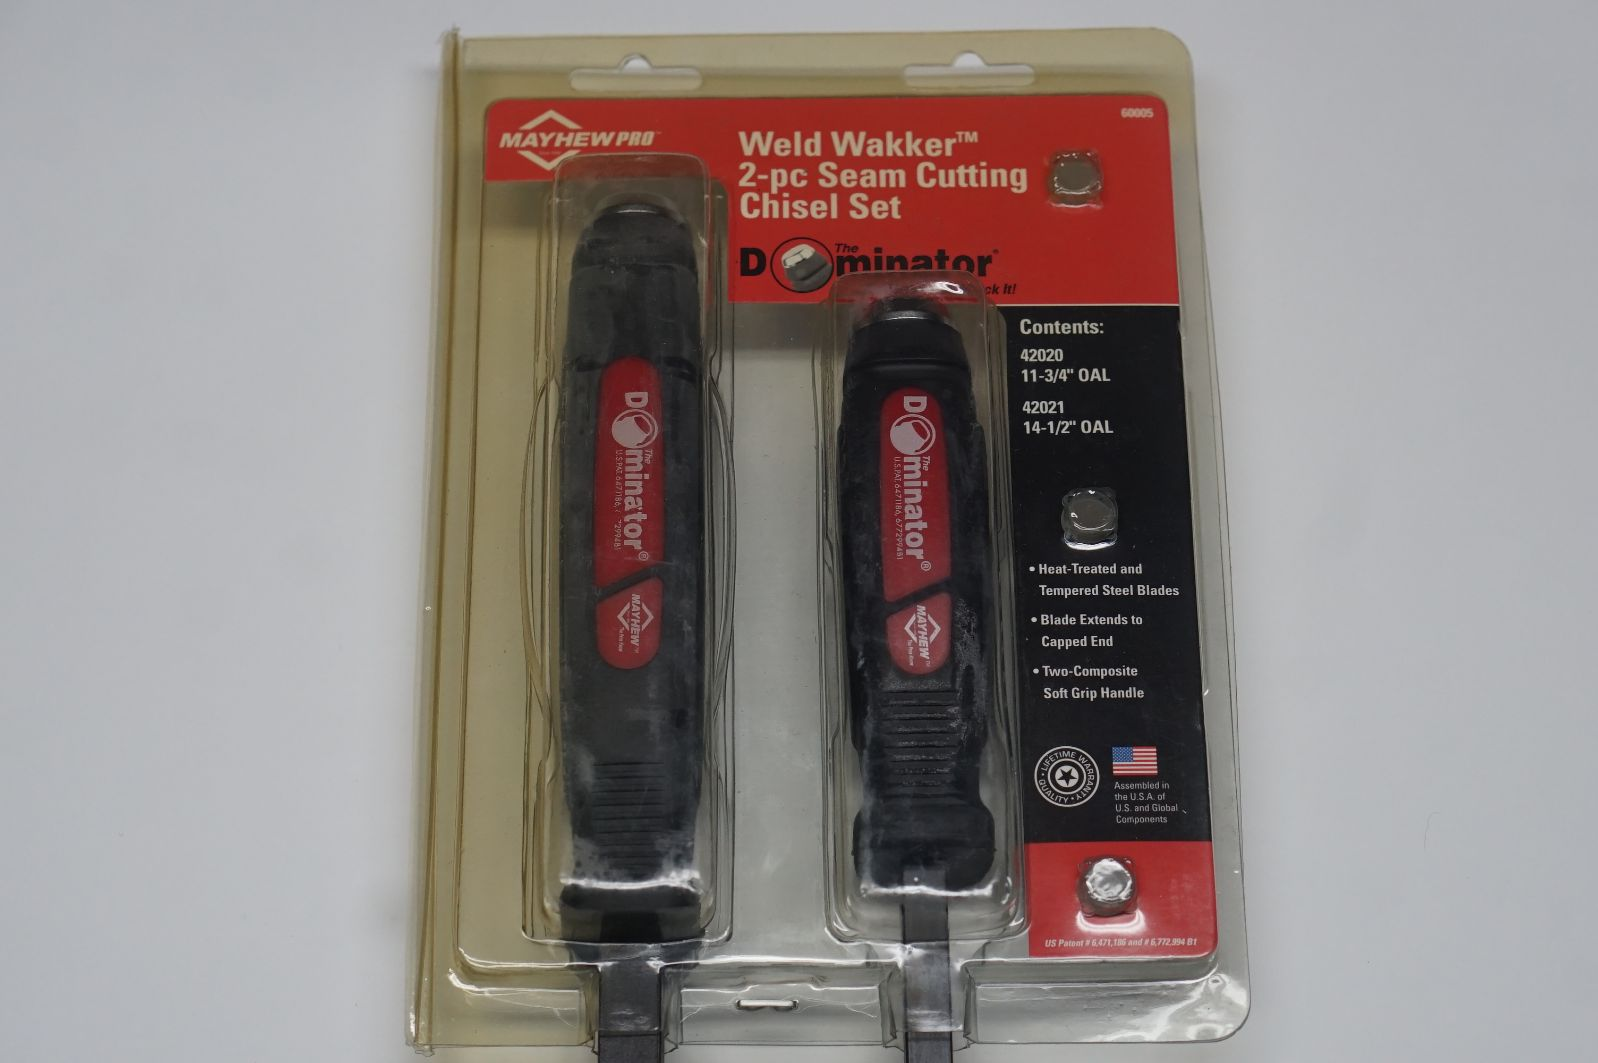 Weld Wakker Seam Cutting Chisel Set